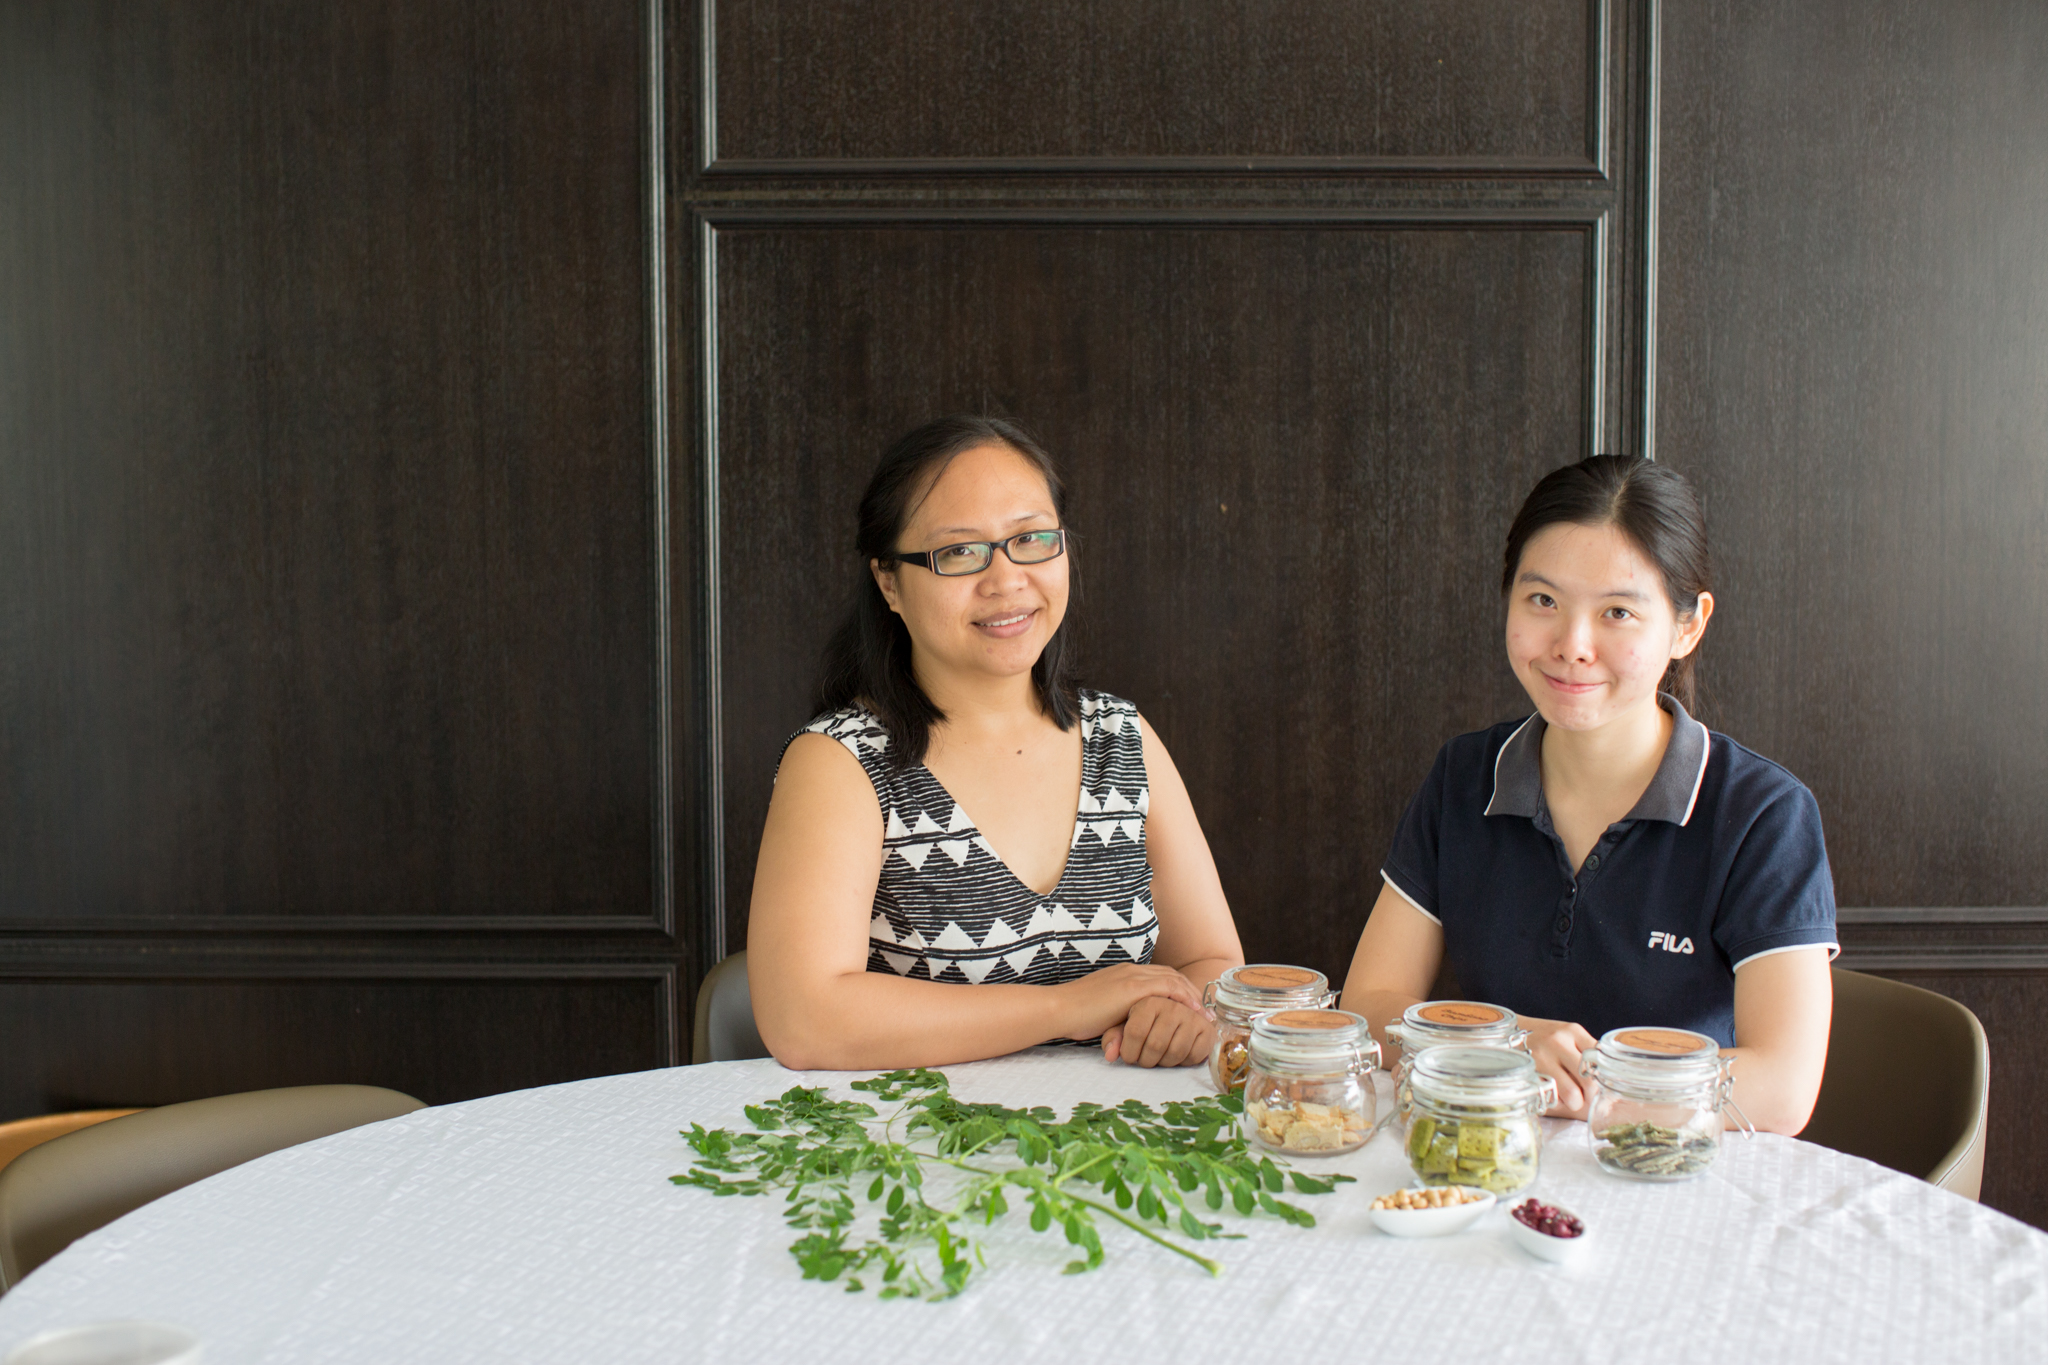 Food technologist Tan Xin Lin and FoodPLUS program manager Advina Julkifle discuss a variety of products developed at Crops for the Future.